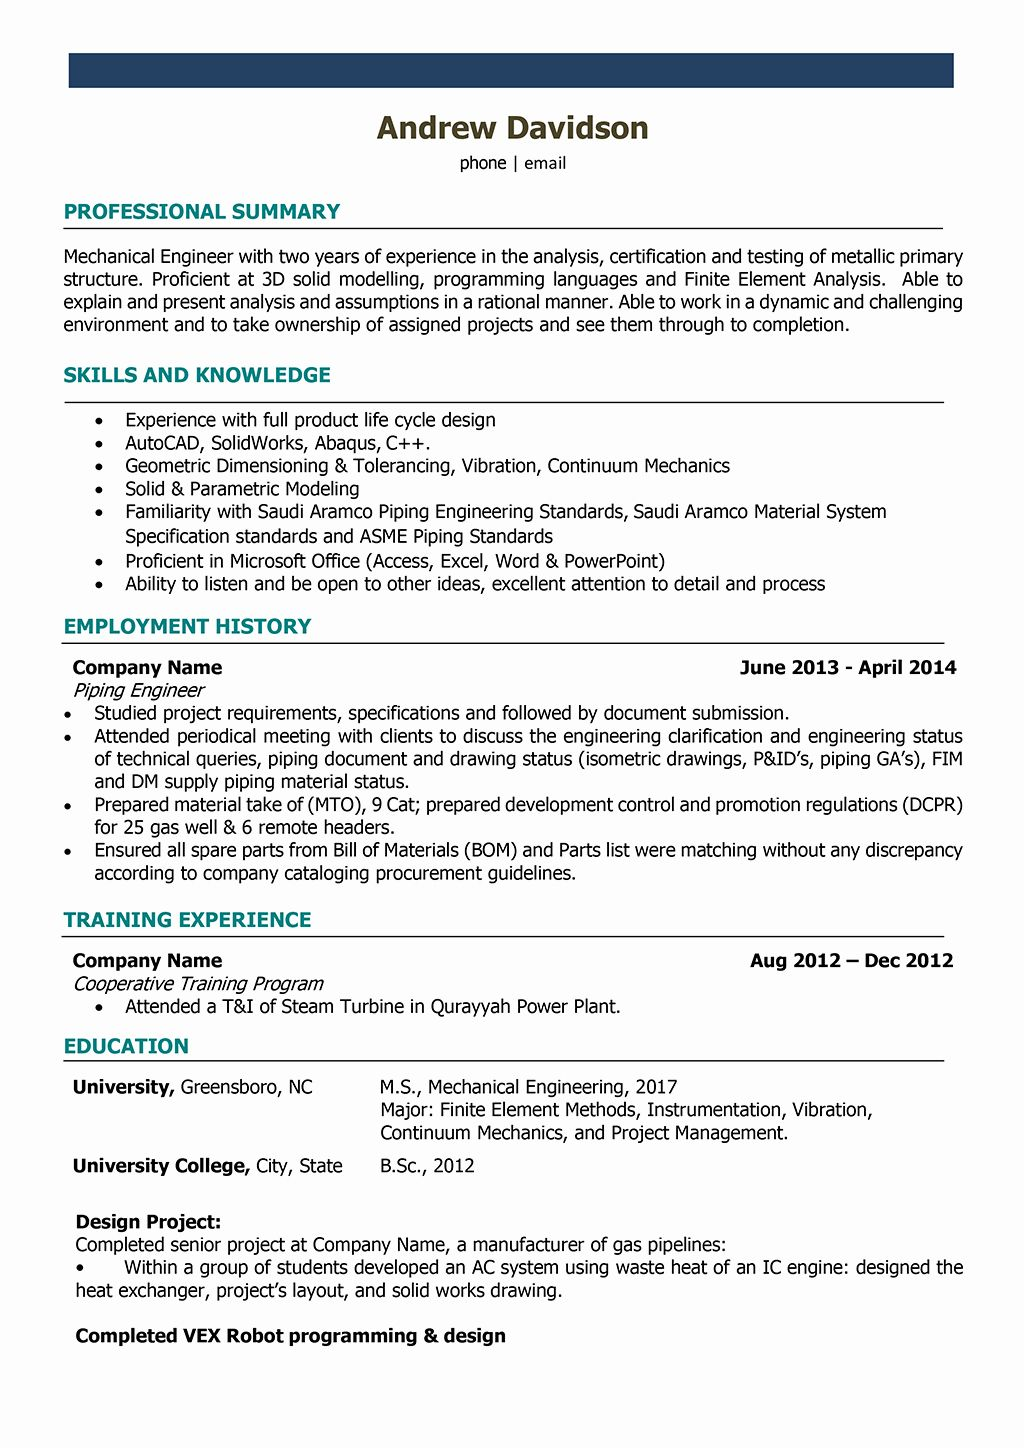 Mechanical Engineering Resume Templates Beautiful Mechanical Engineer Resume Samples Engineering Resume Engineering Resume Templates Mechanical Engineer Resume